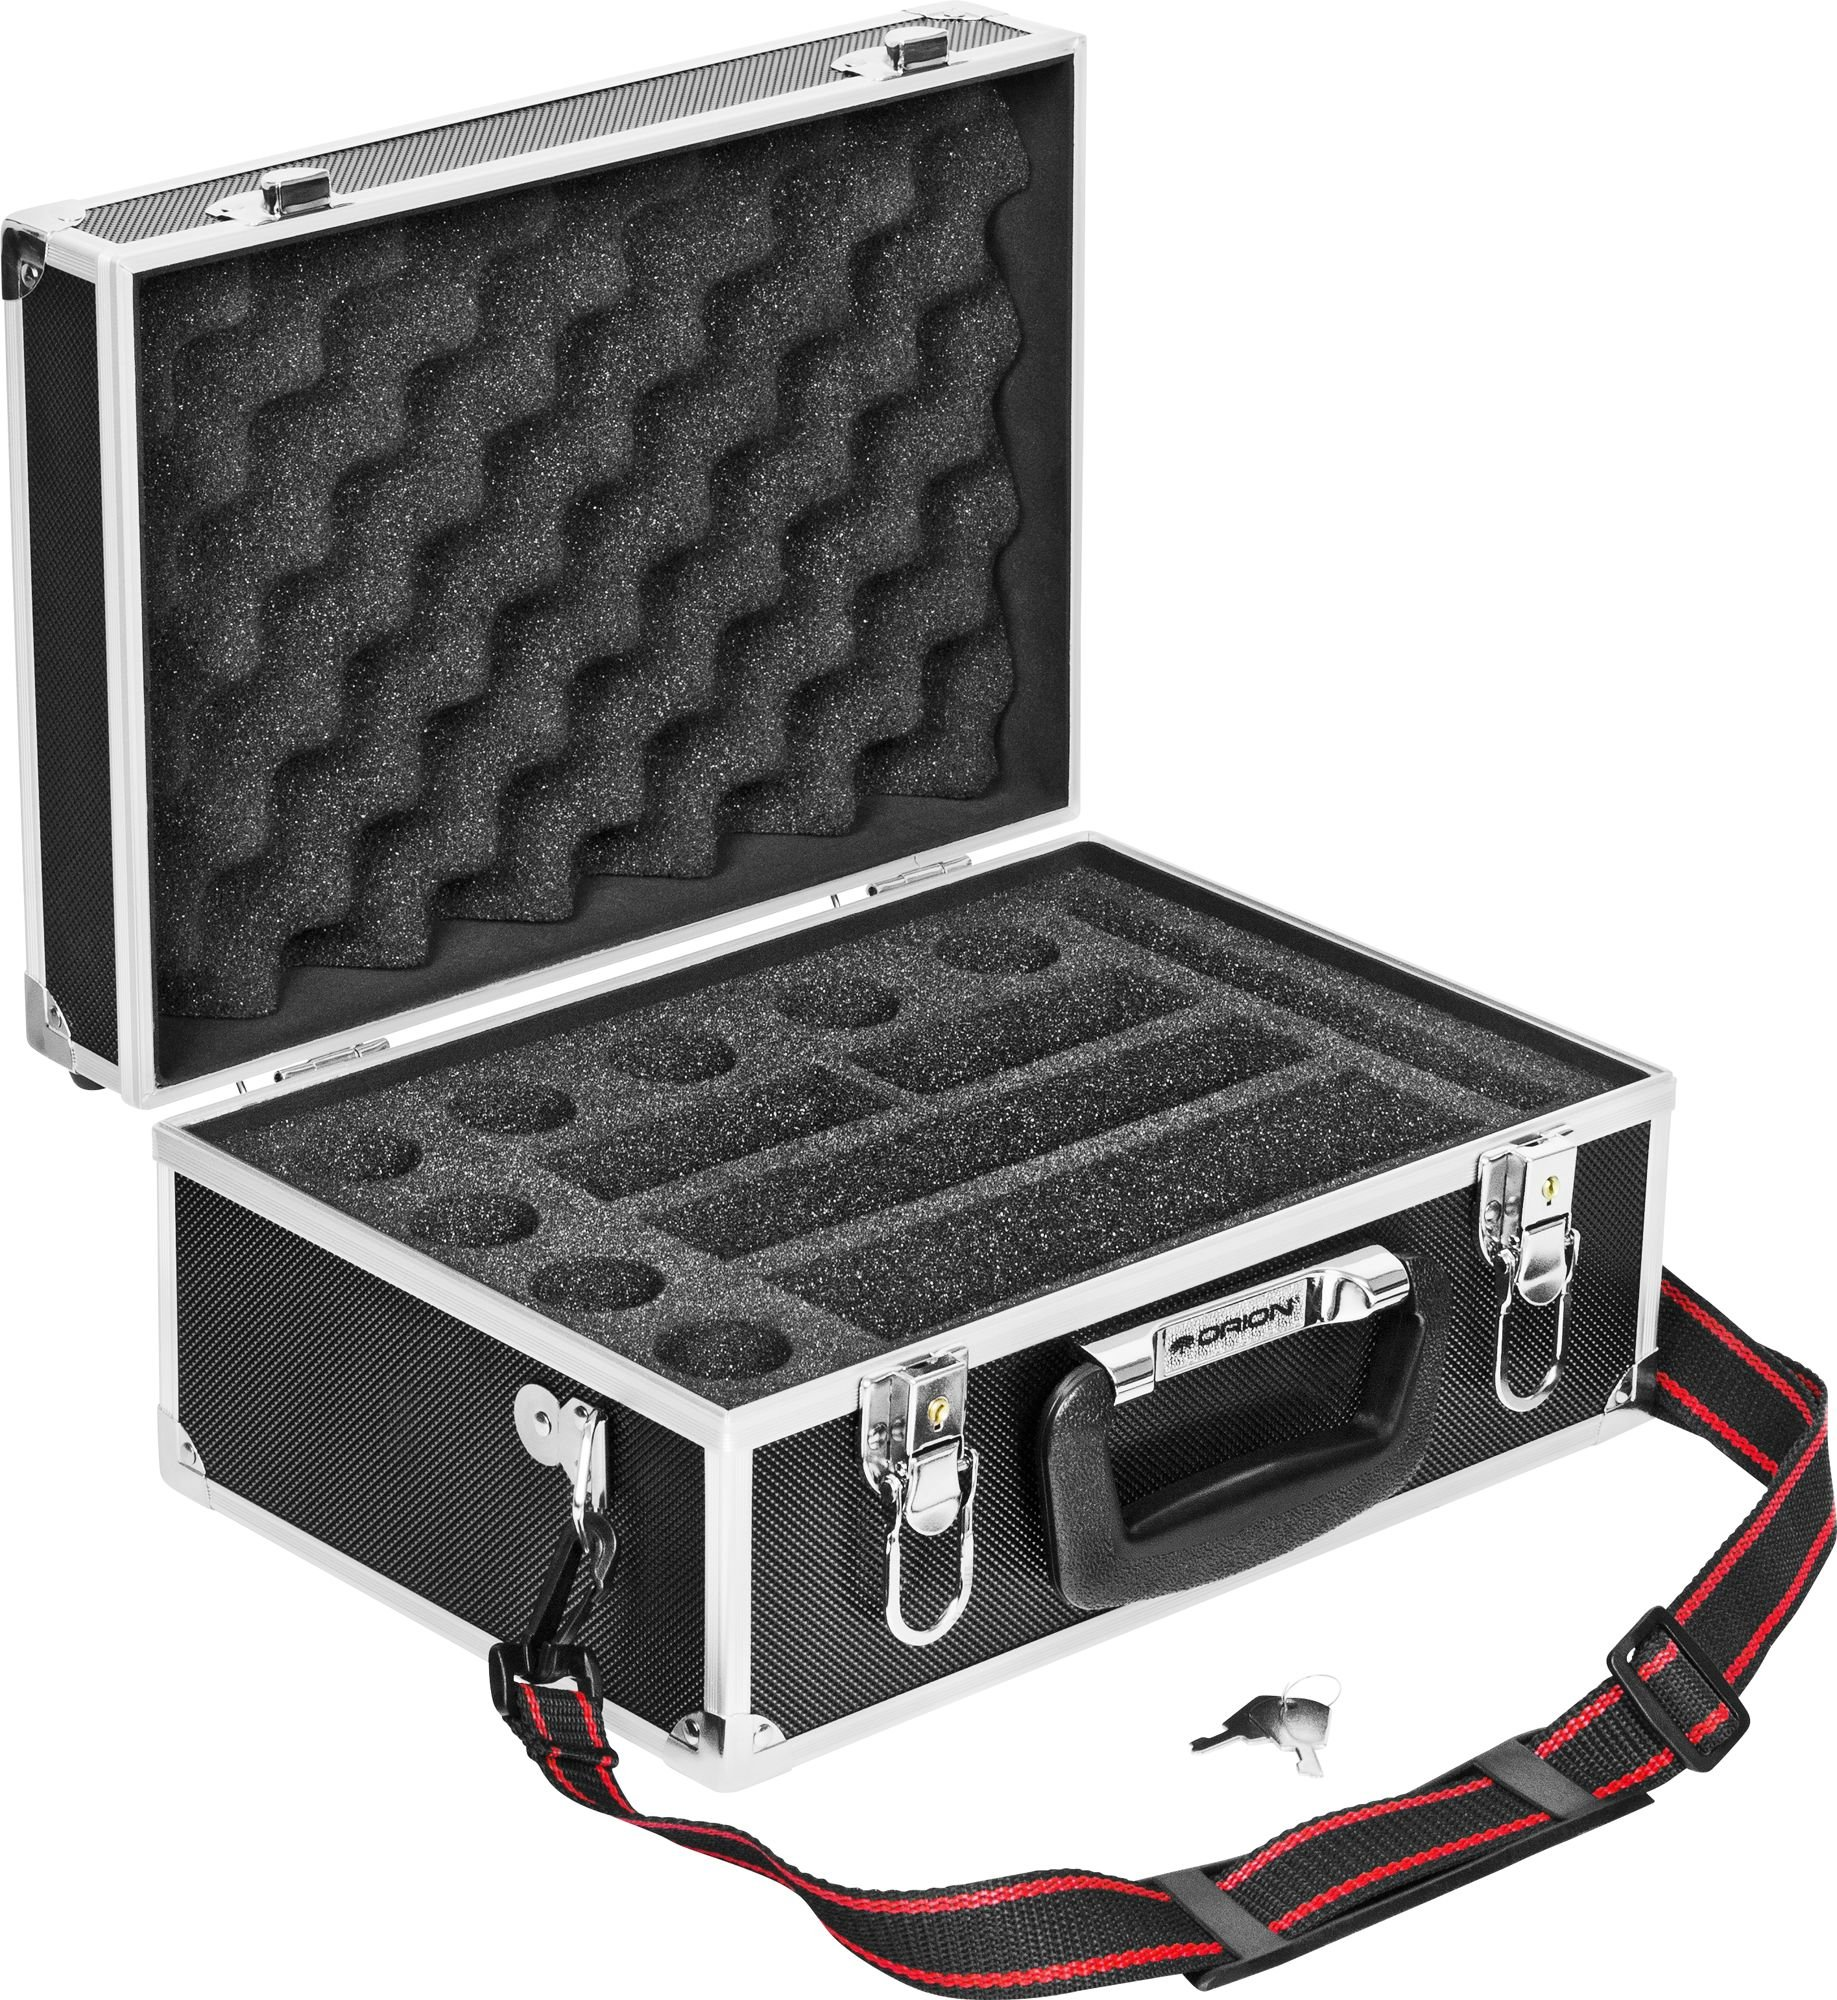 Orion 05958 Medium Deluxe Accessory Case (Black) by Orion